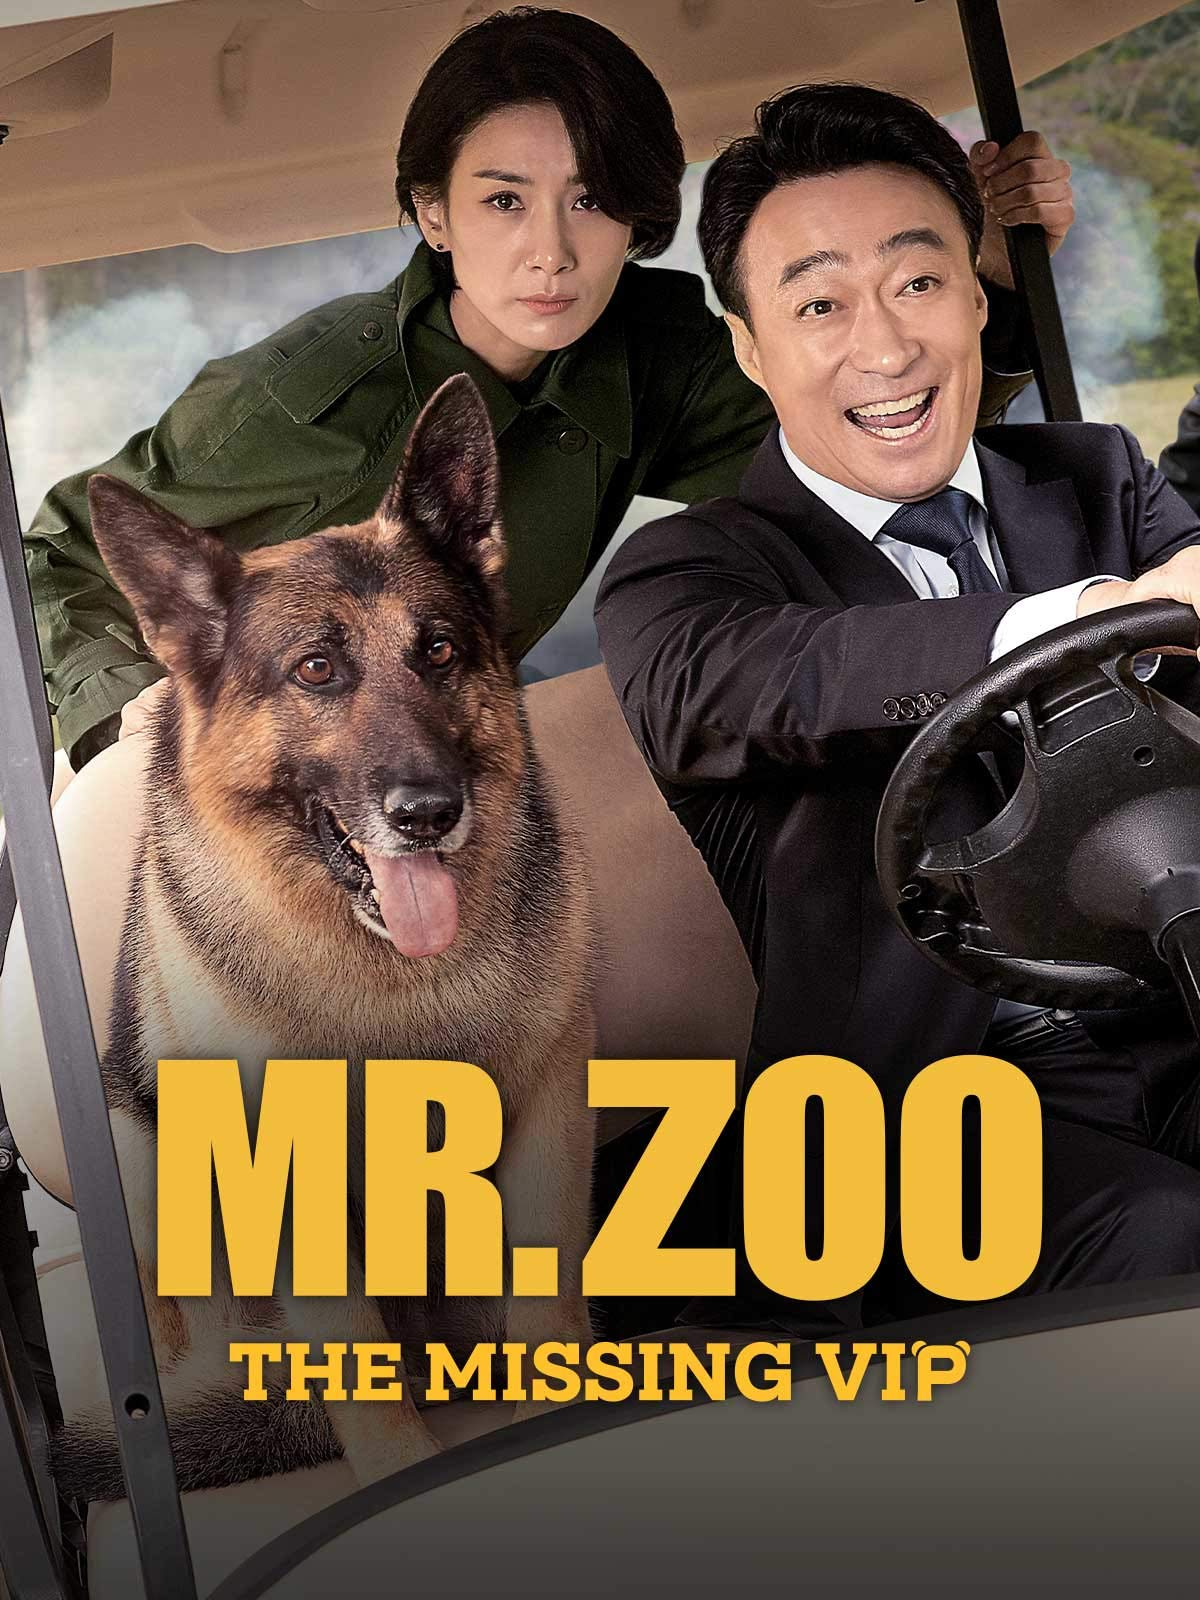 ดูหนัง Mr Zoo The Missing VIP